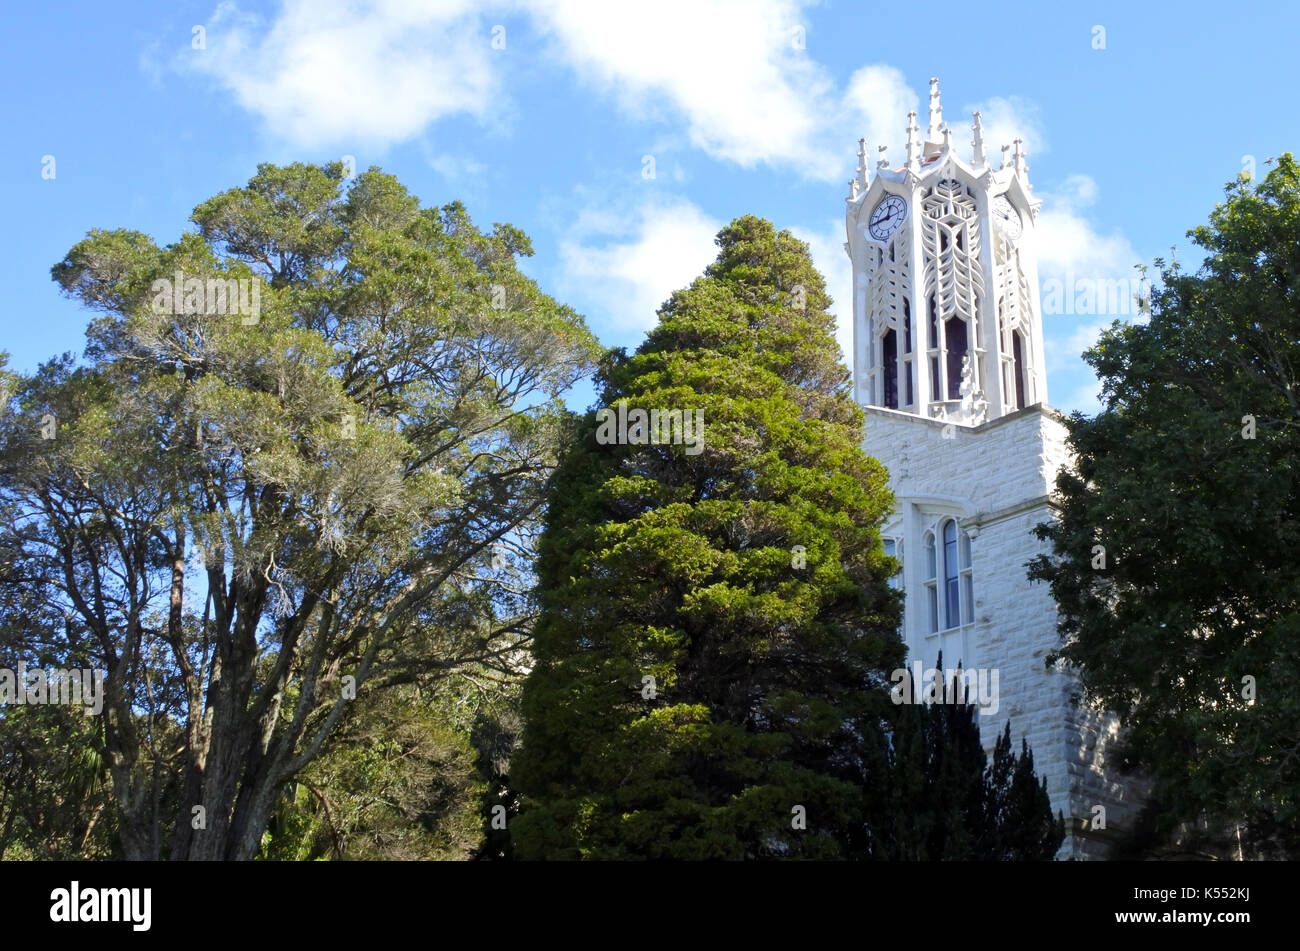 Clocktower of the Auckland University - Old Arts Building was founded in 1926. This university is the largest one in New Zealand Stock Photo